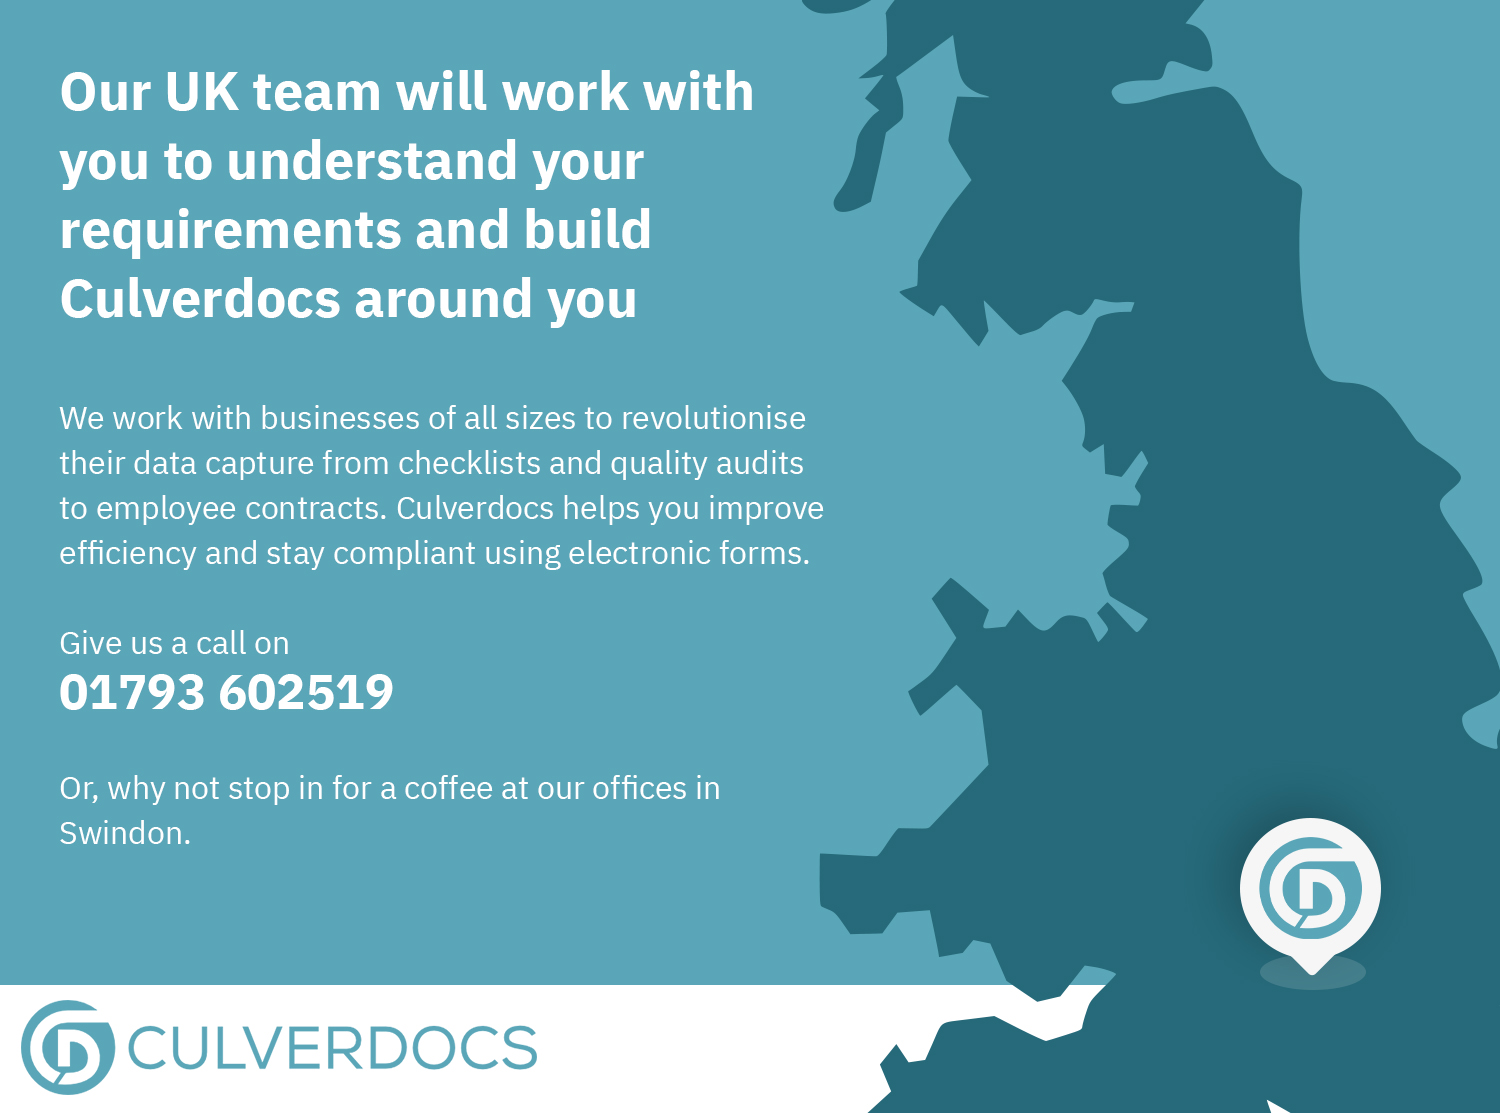 Our UK team will work with you to understand your requirements and build Culverdocs around you